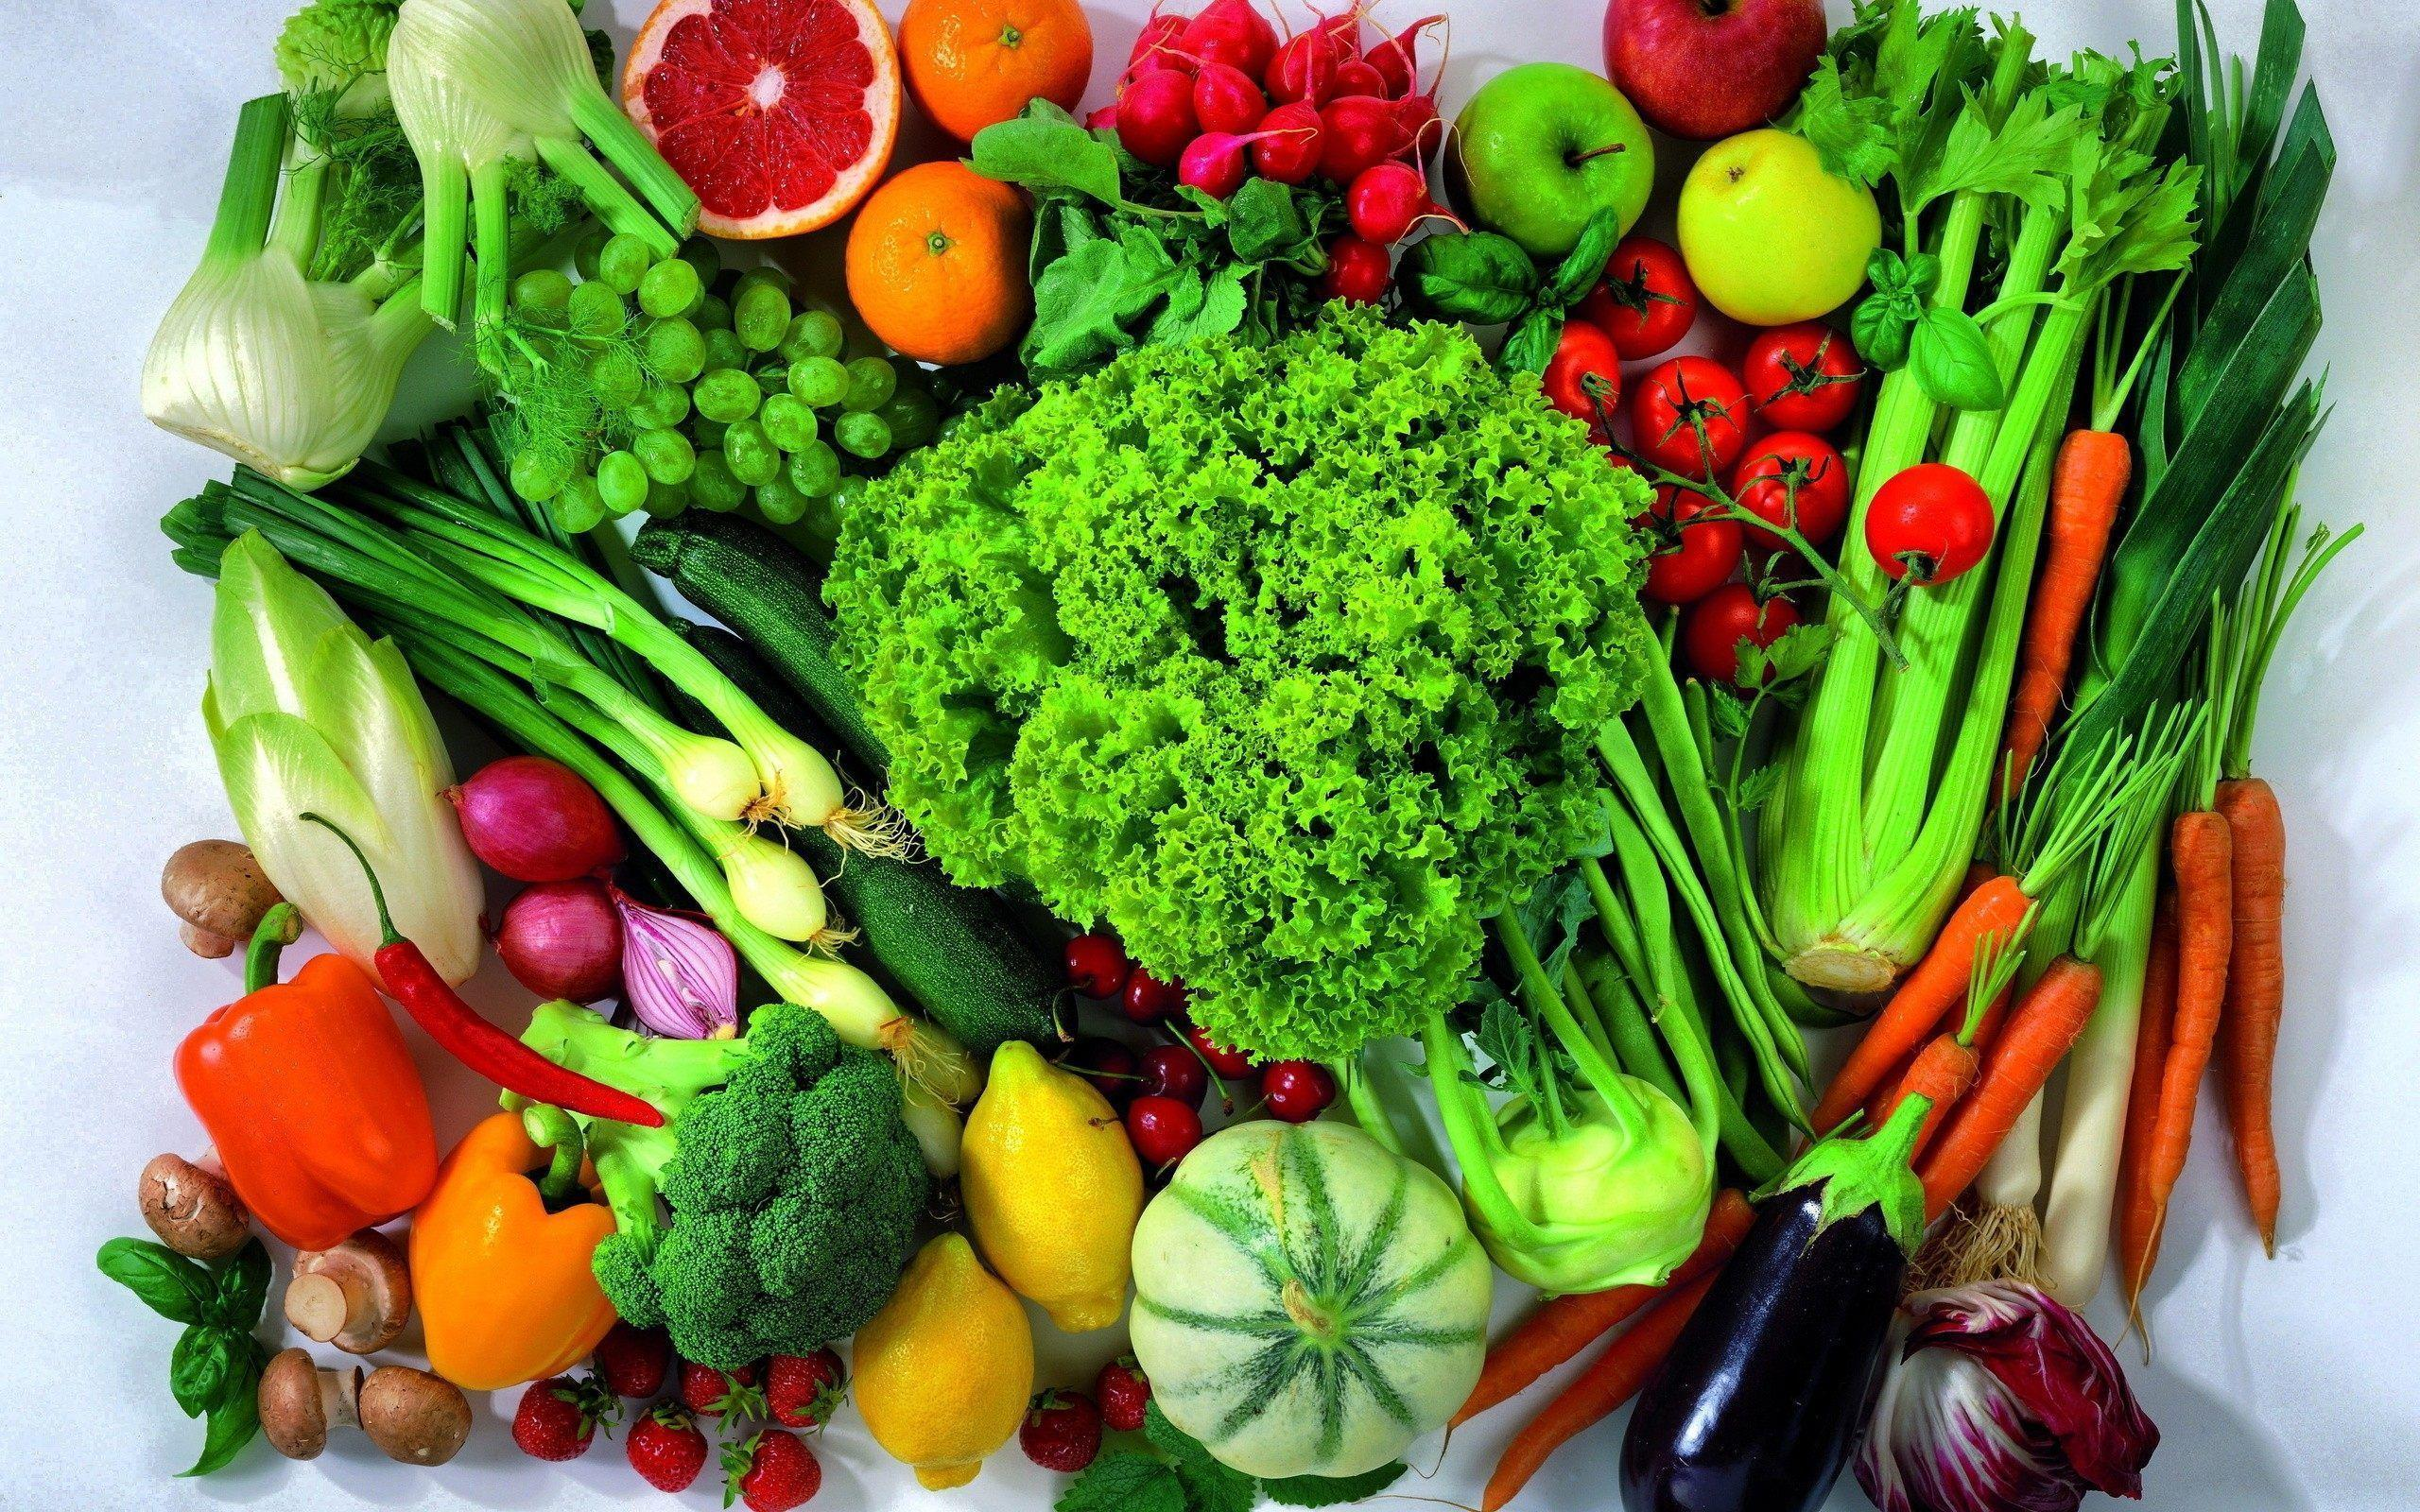 Healthy Food Of Wallpapers Desktop Full Hd Archived at Food